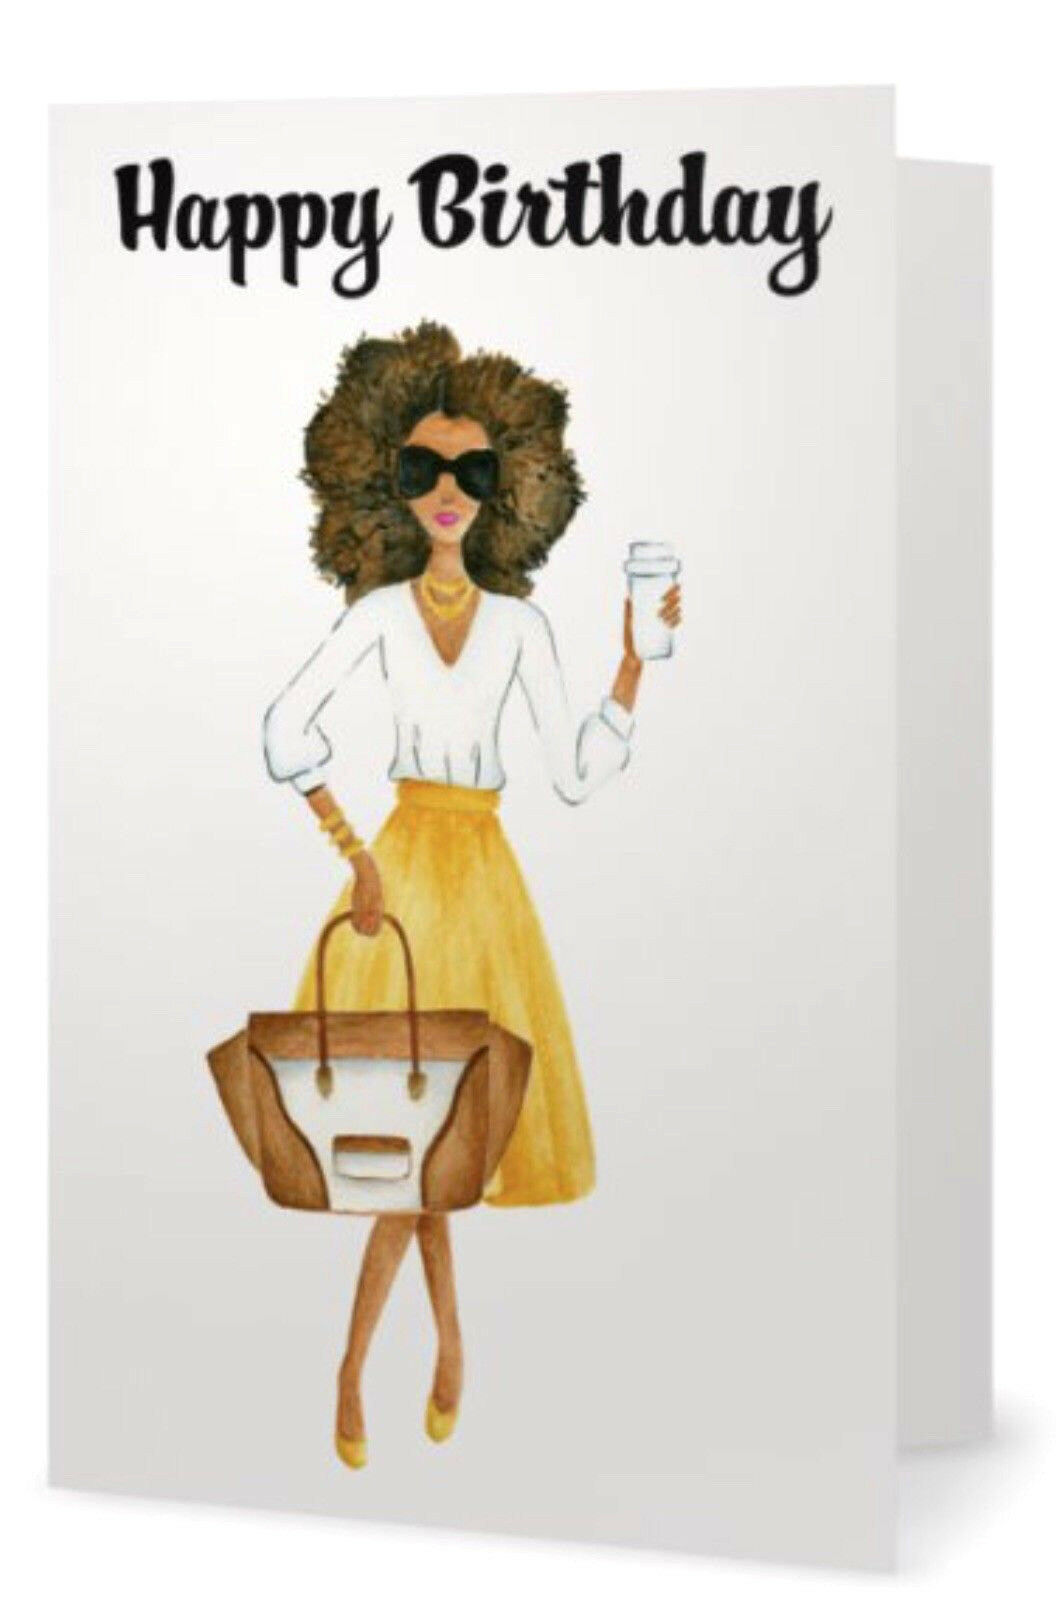 Fabulous African American Lady In Yellow Happy Birthday Greeting Cards 5 1299